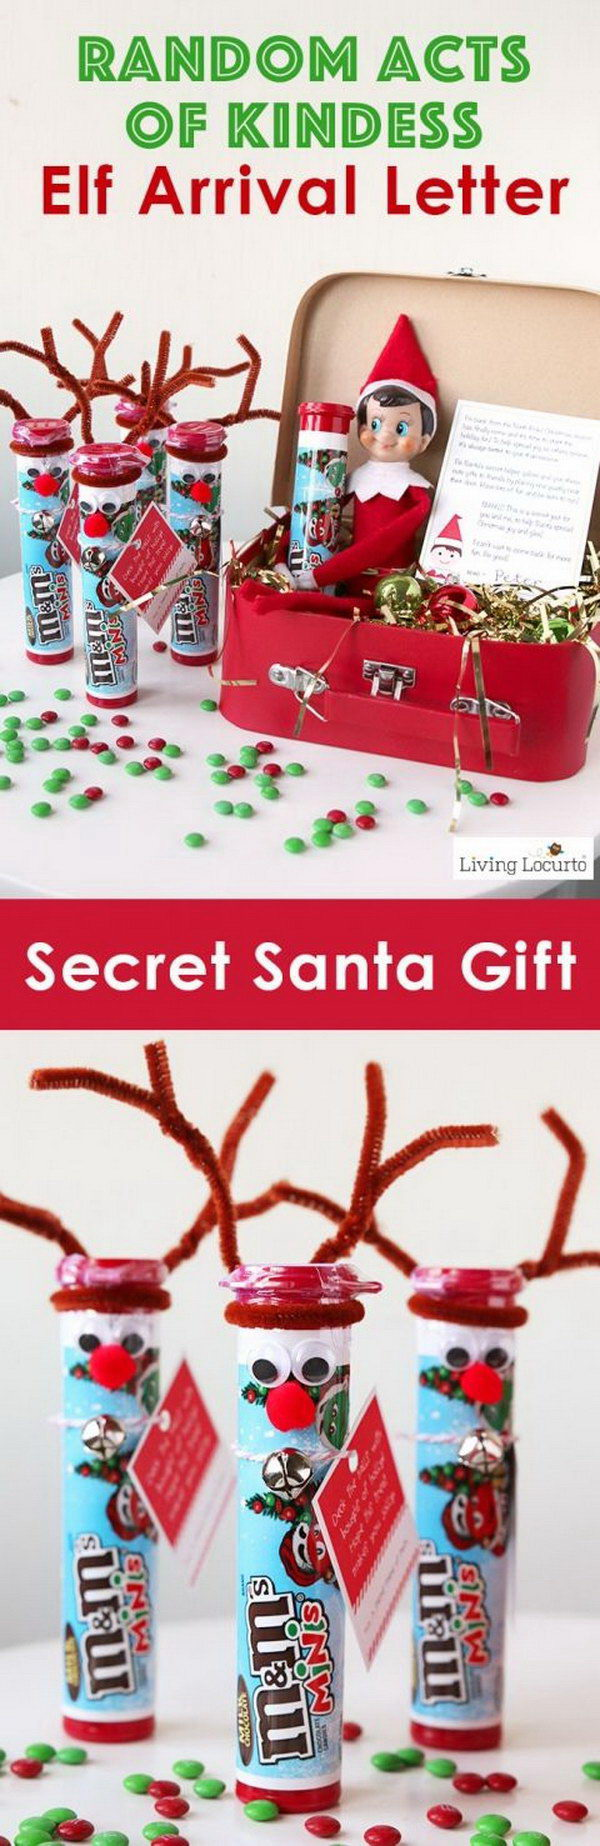 DIY Rudolph the Red Nosed Reindeer Candy Gift.